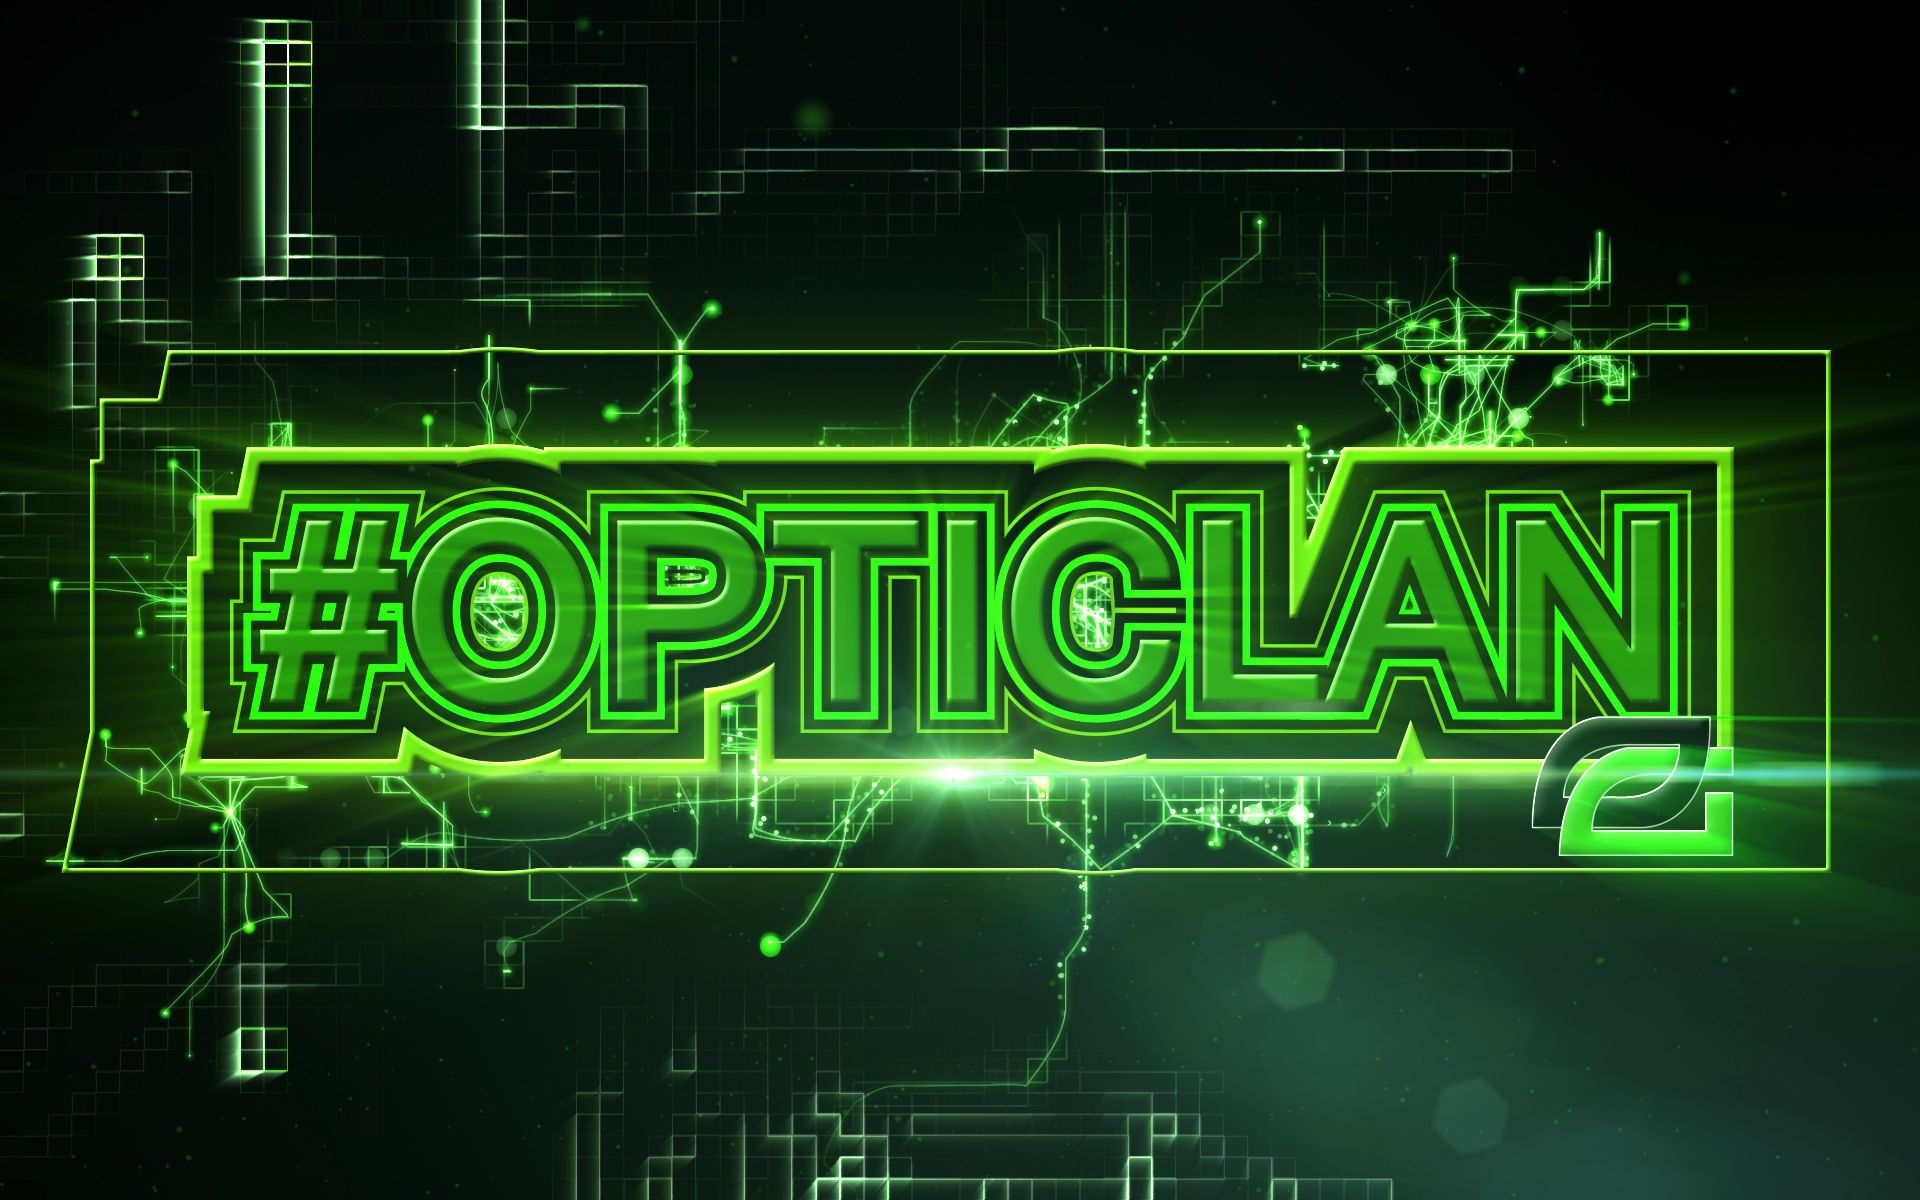 #OpTicLan. Wallpaper for support of OpTic Gaming Organisation.